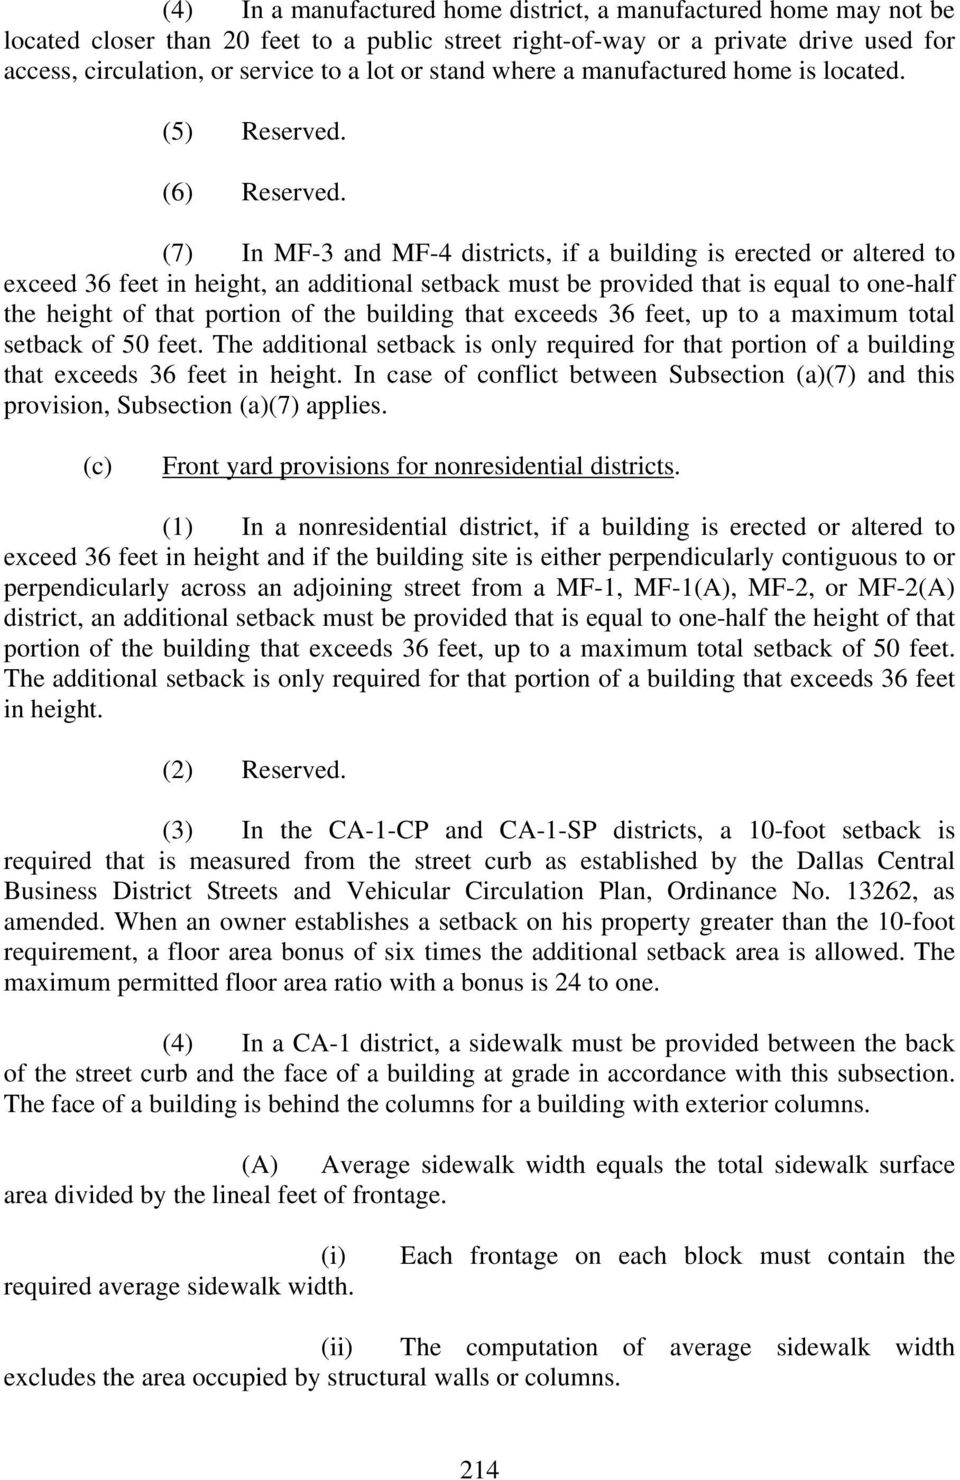 (7) In MF-3 and MF-4 districts, if a building is erected or altered to exceed 36 feet in height, an additional setback must be provided that is equal to one-half the height of that portion of the